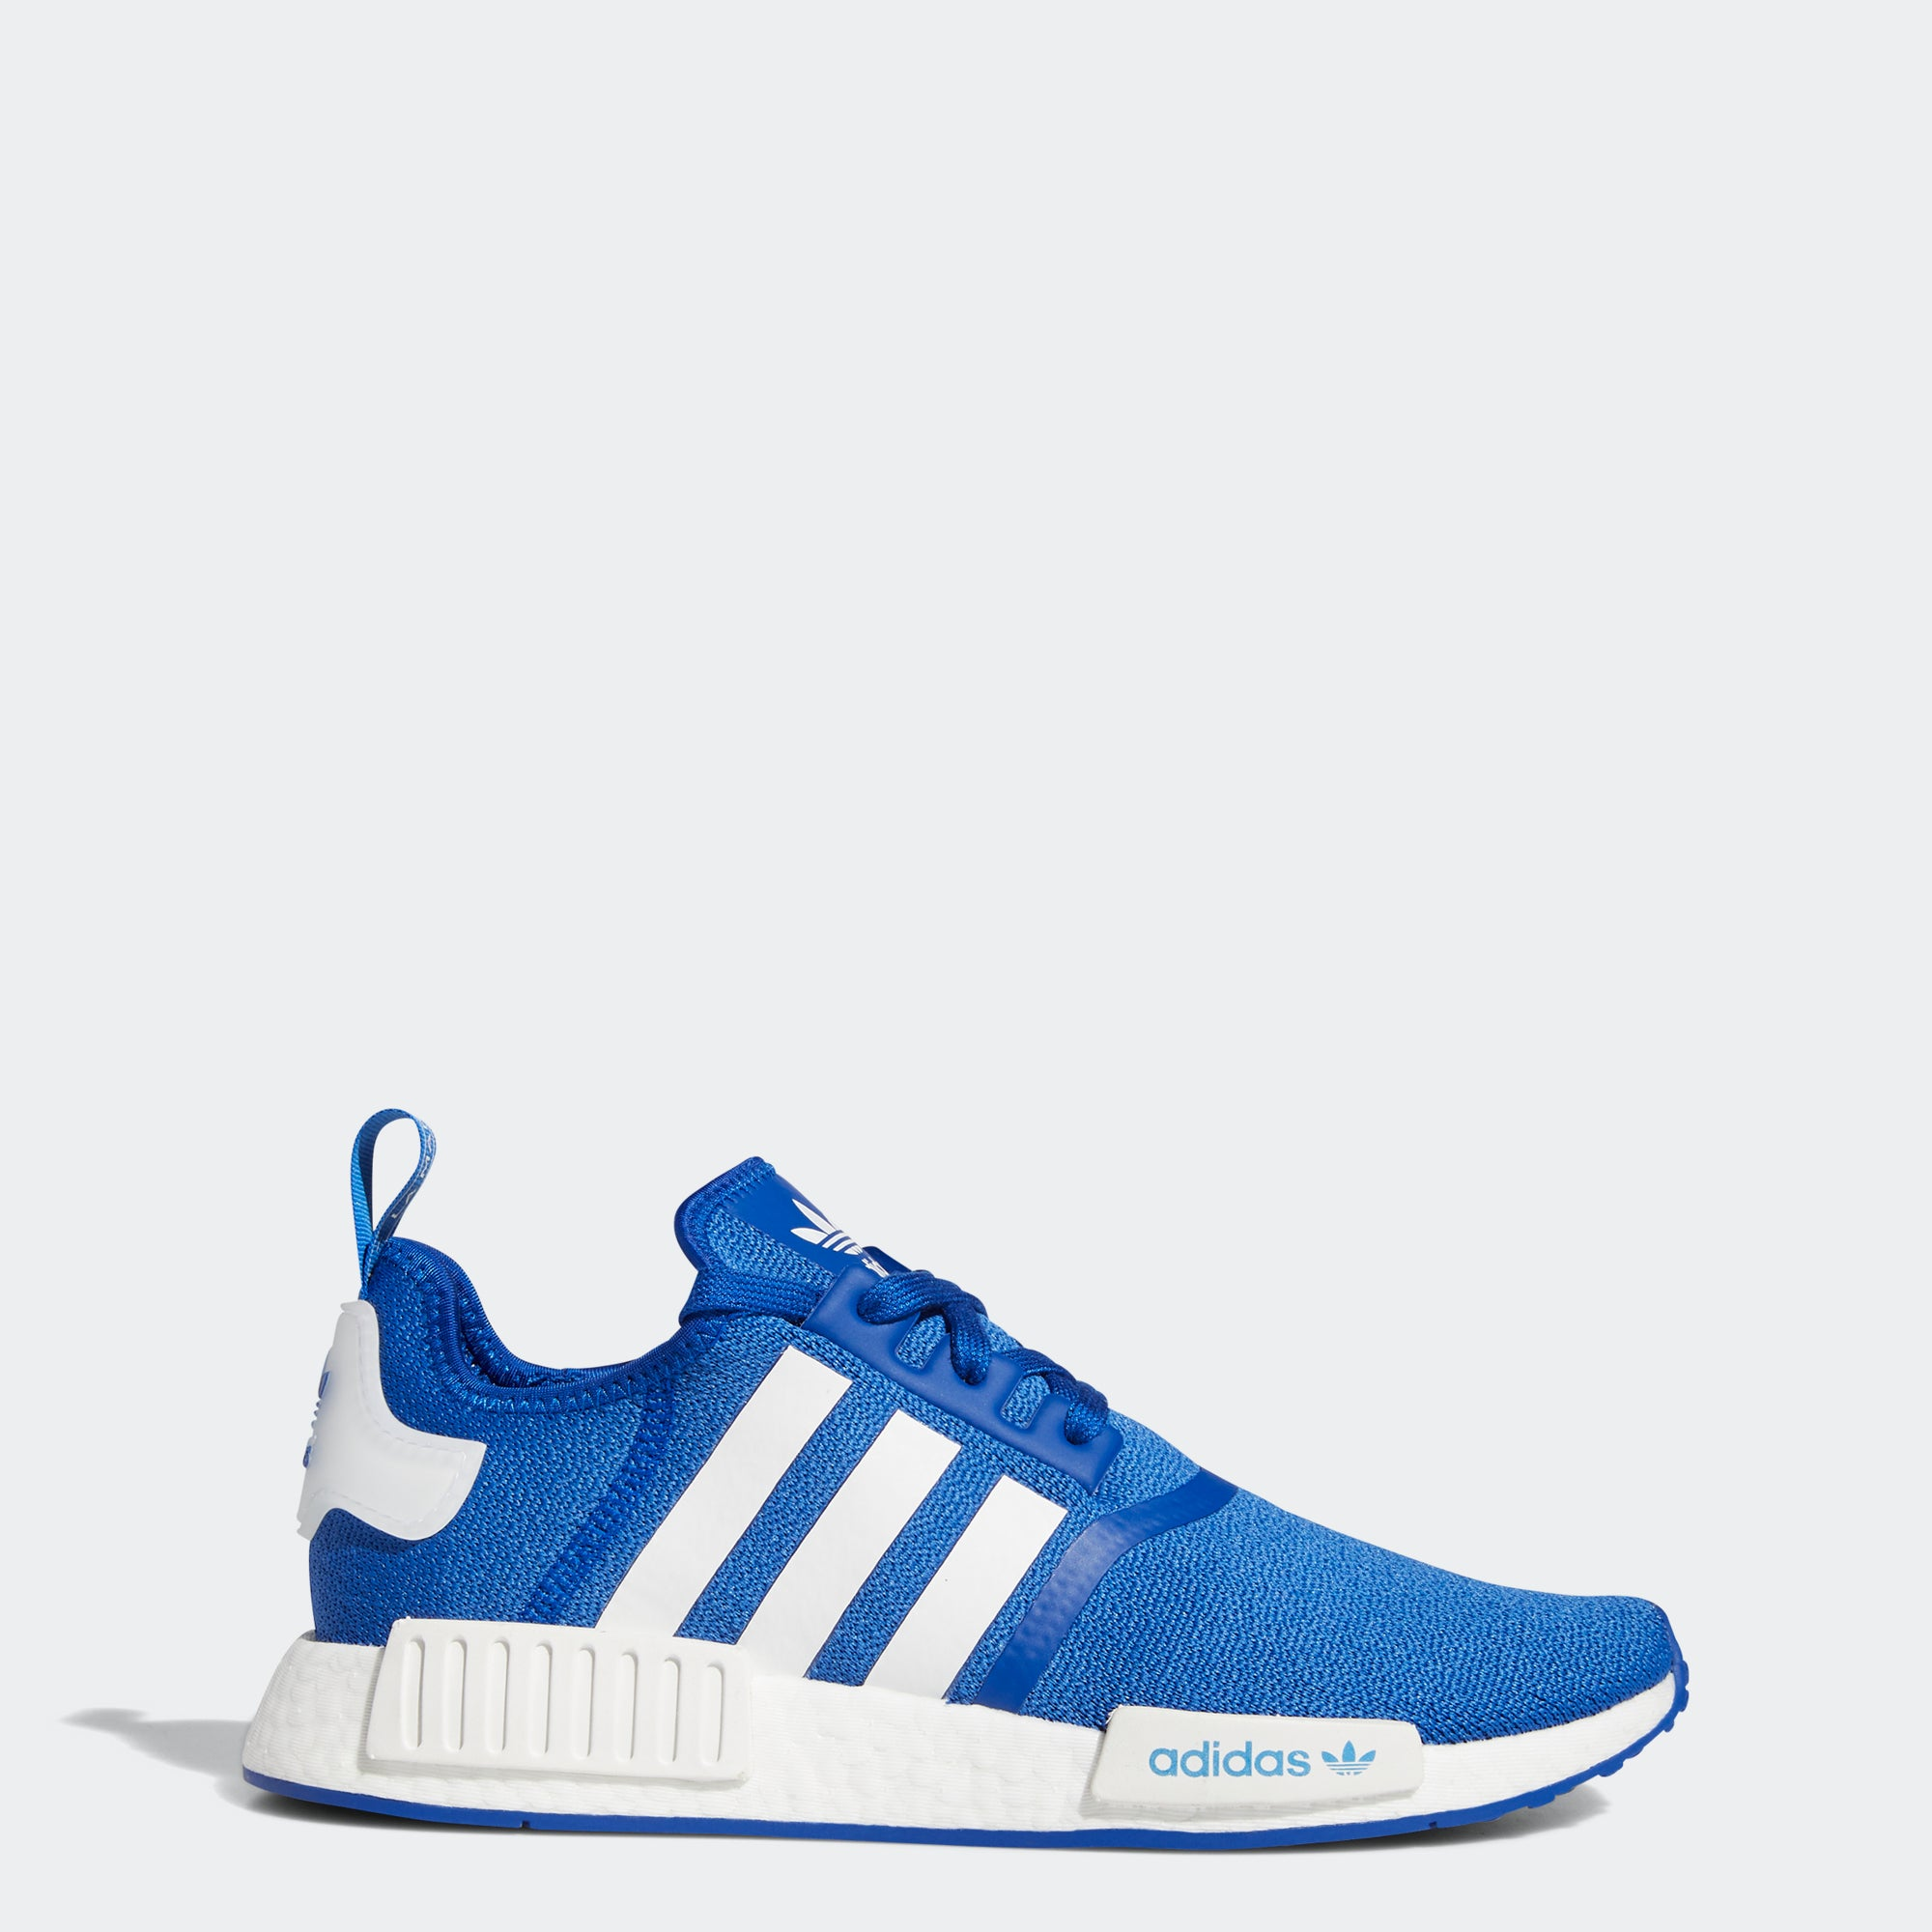 Men's adidas NMD_R1 Shoes Royal Blue FY9383 | Chicago City Sports